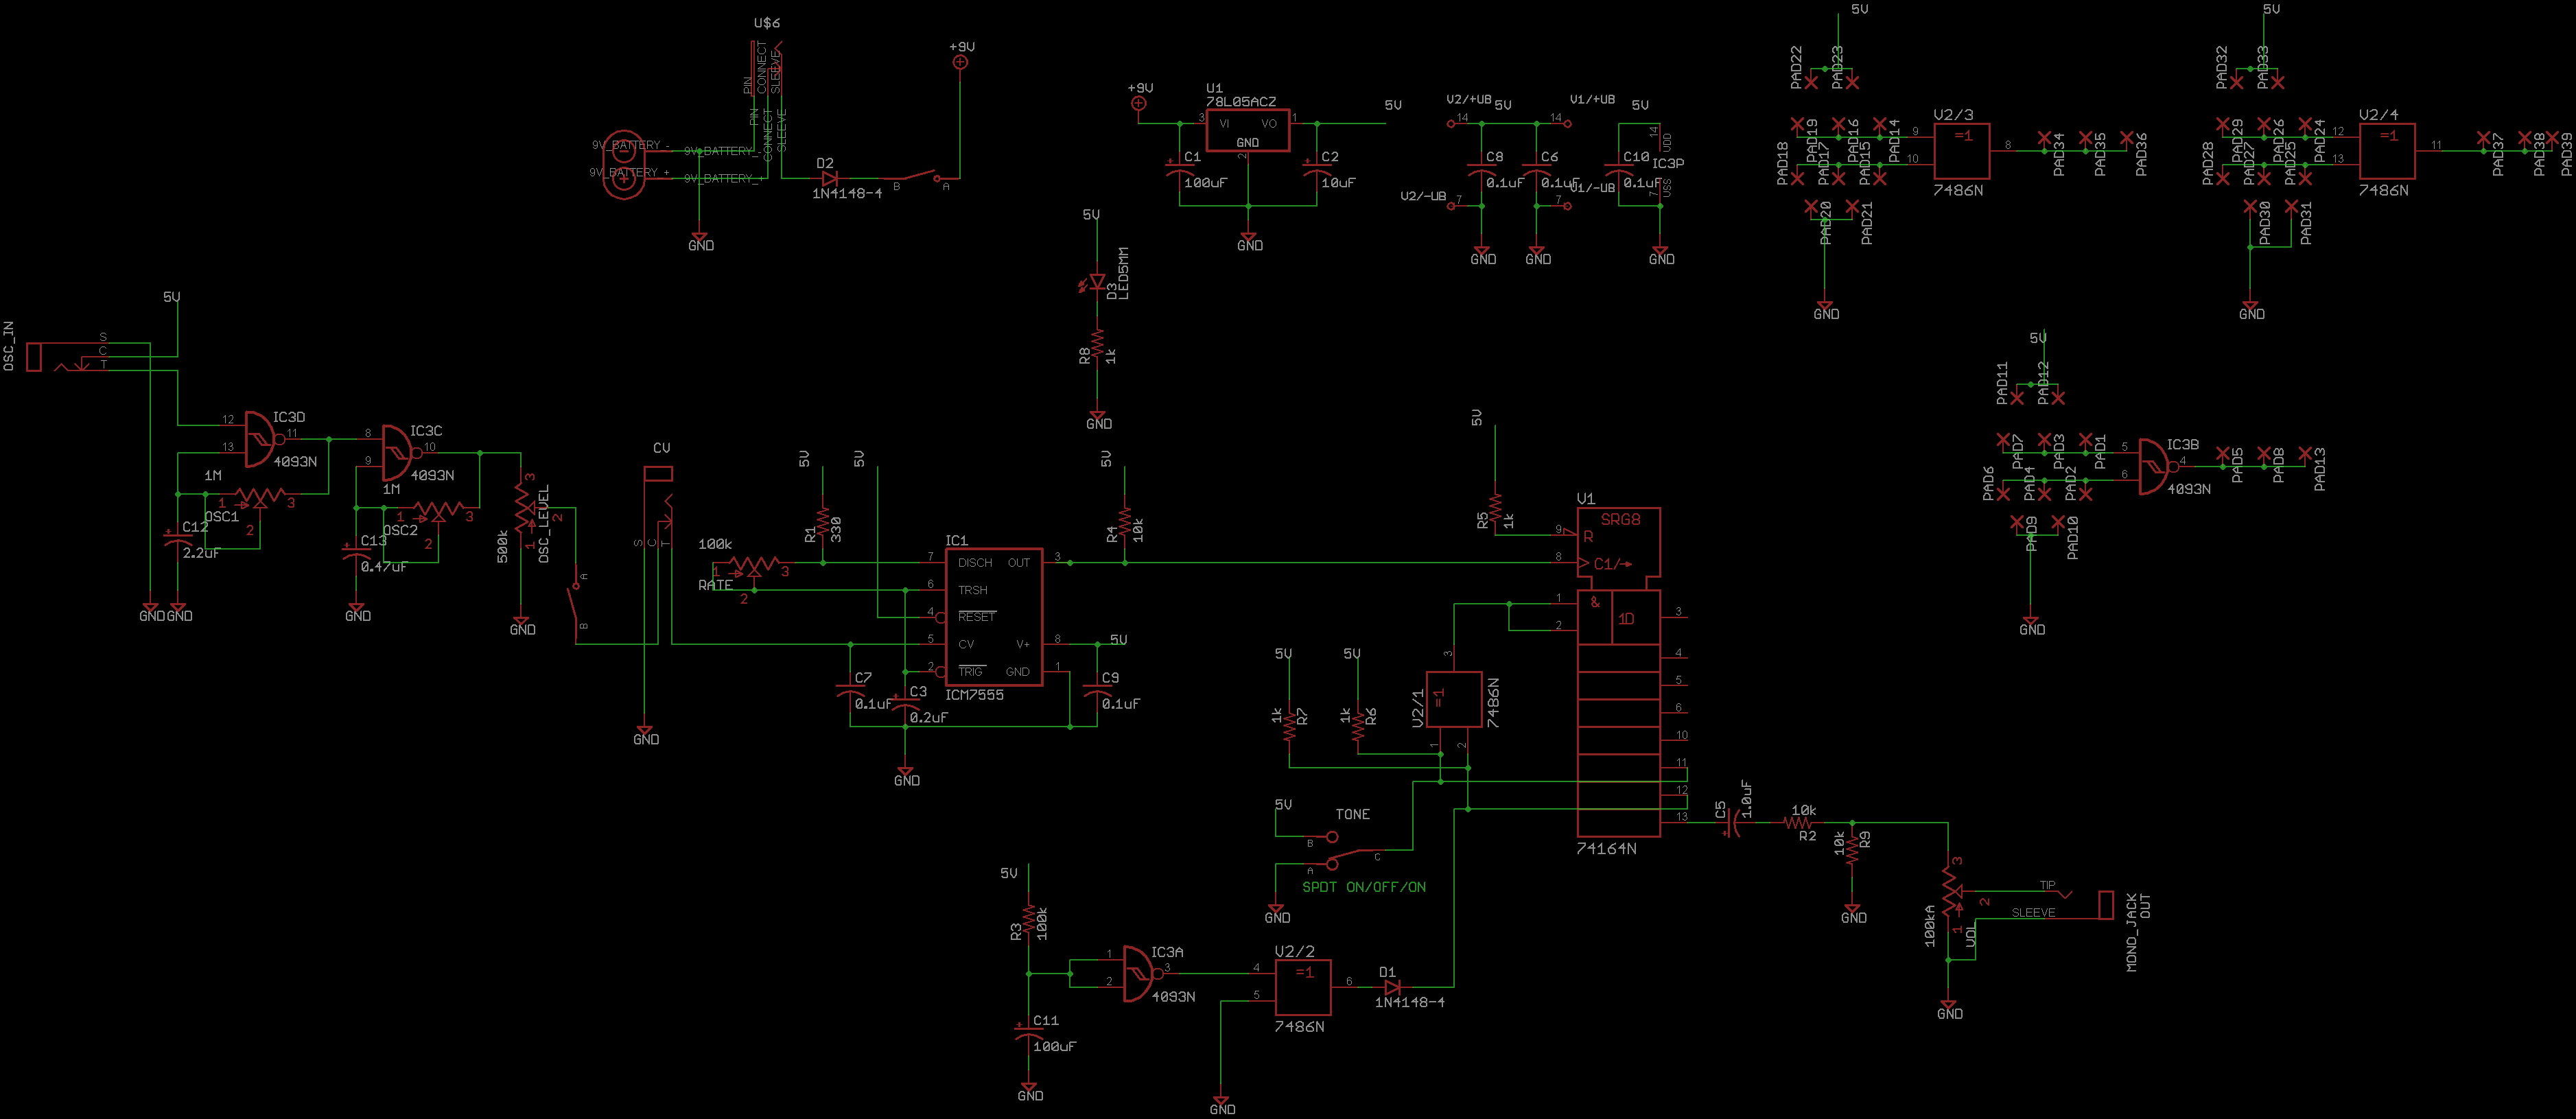 Atari Wiring Diagram Whirlpool Refrigerator Schematic For The Junk Console Circuit Sdiy Pinterest Audio